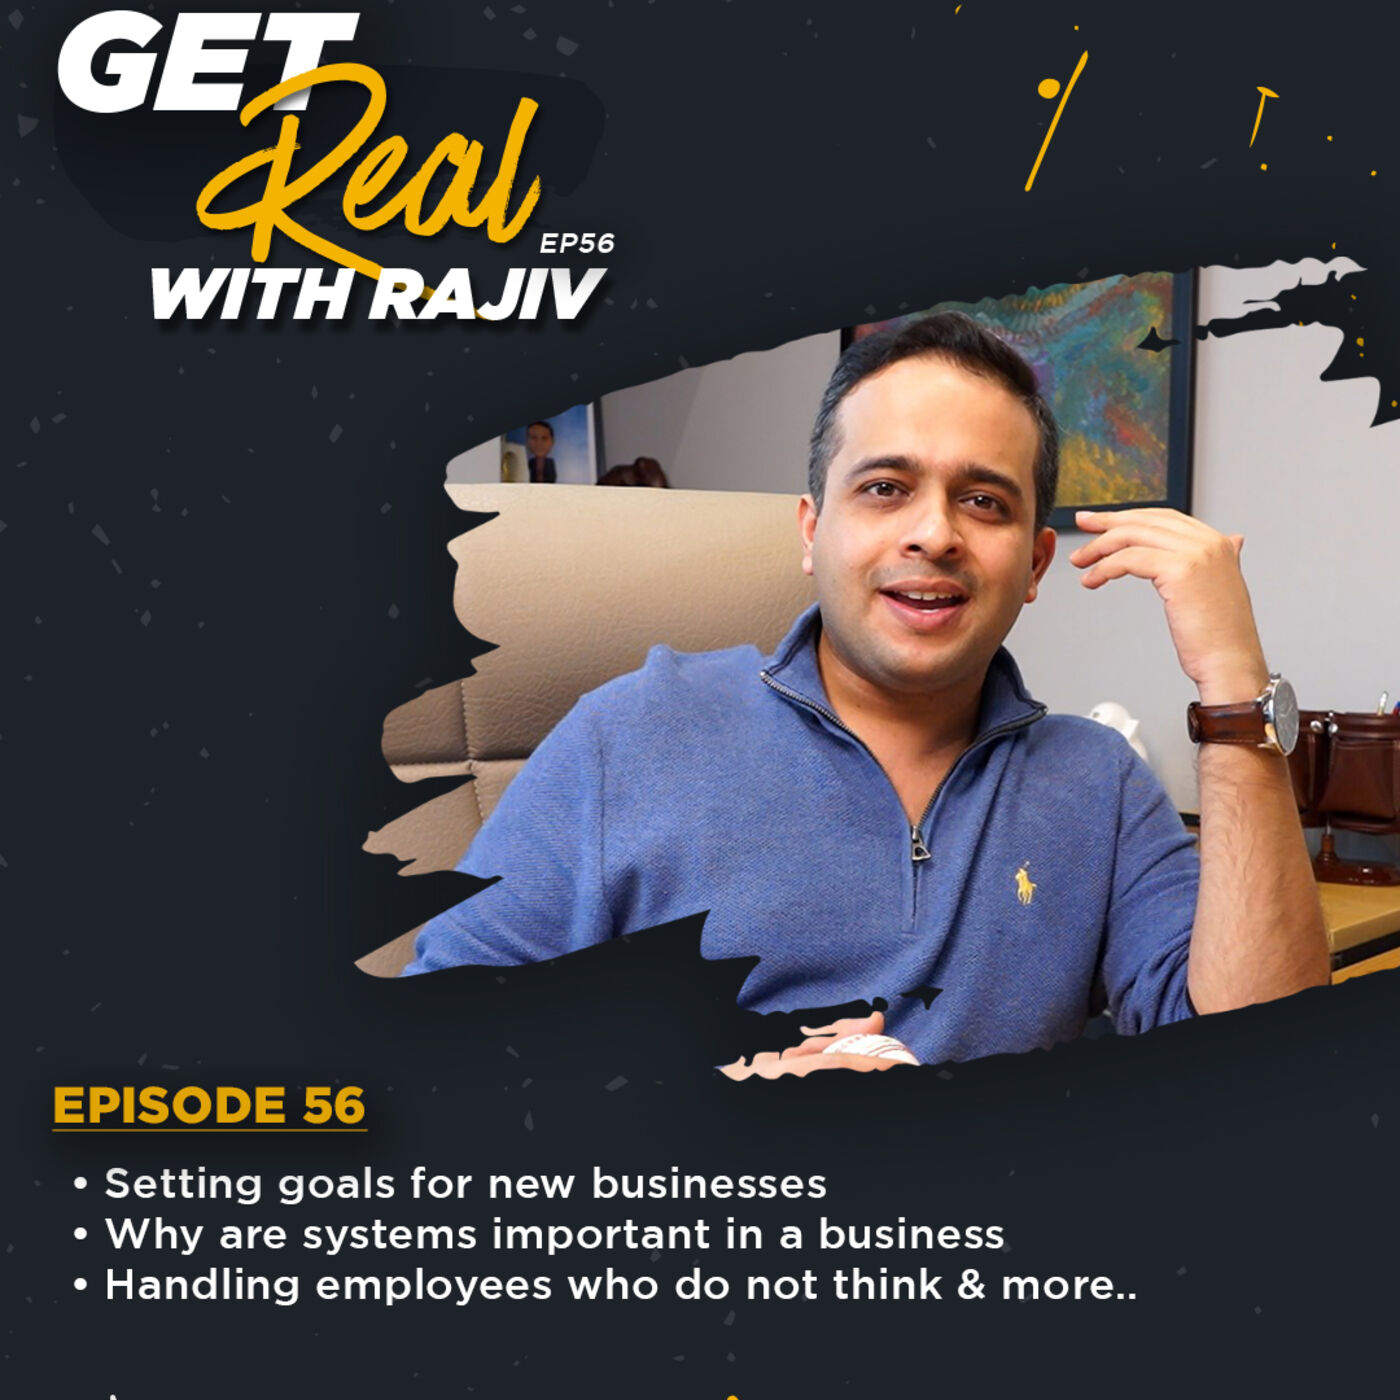 Setting goals for new businesses | Handling employees who do not think & more | Get Real with Rajiv - Episode 56